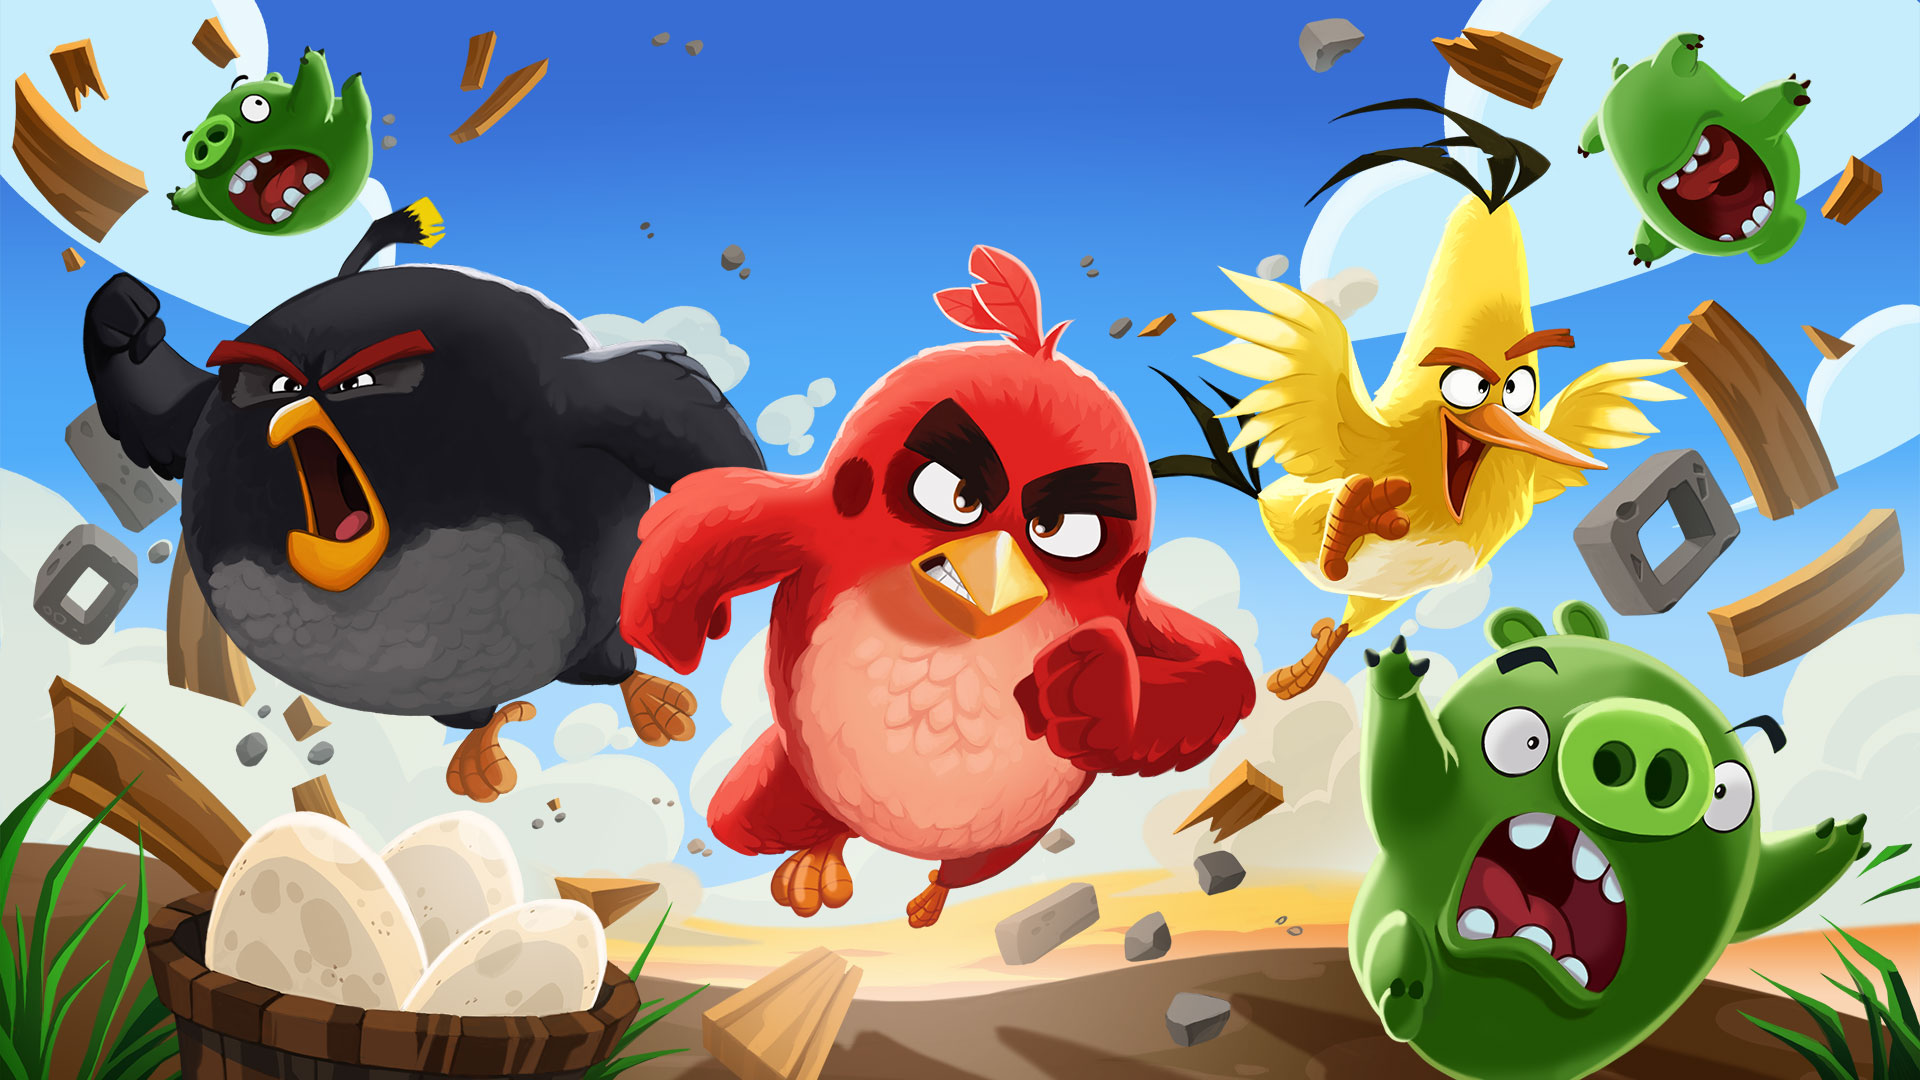 Images Of Angry Birds Characters: Angry Birds Na Bolsa A Valer Dois Mil Milhões